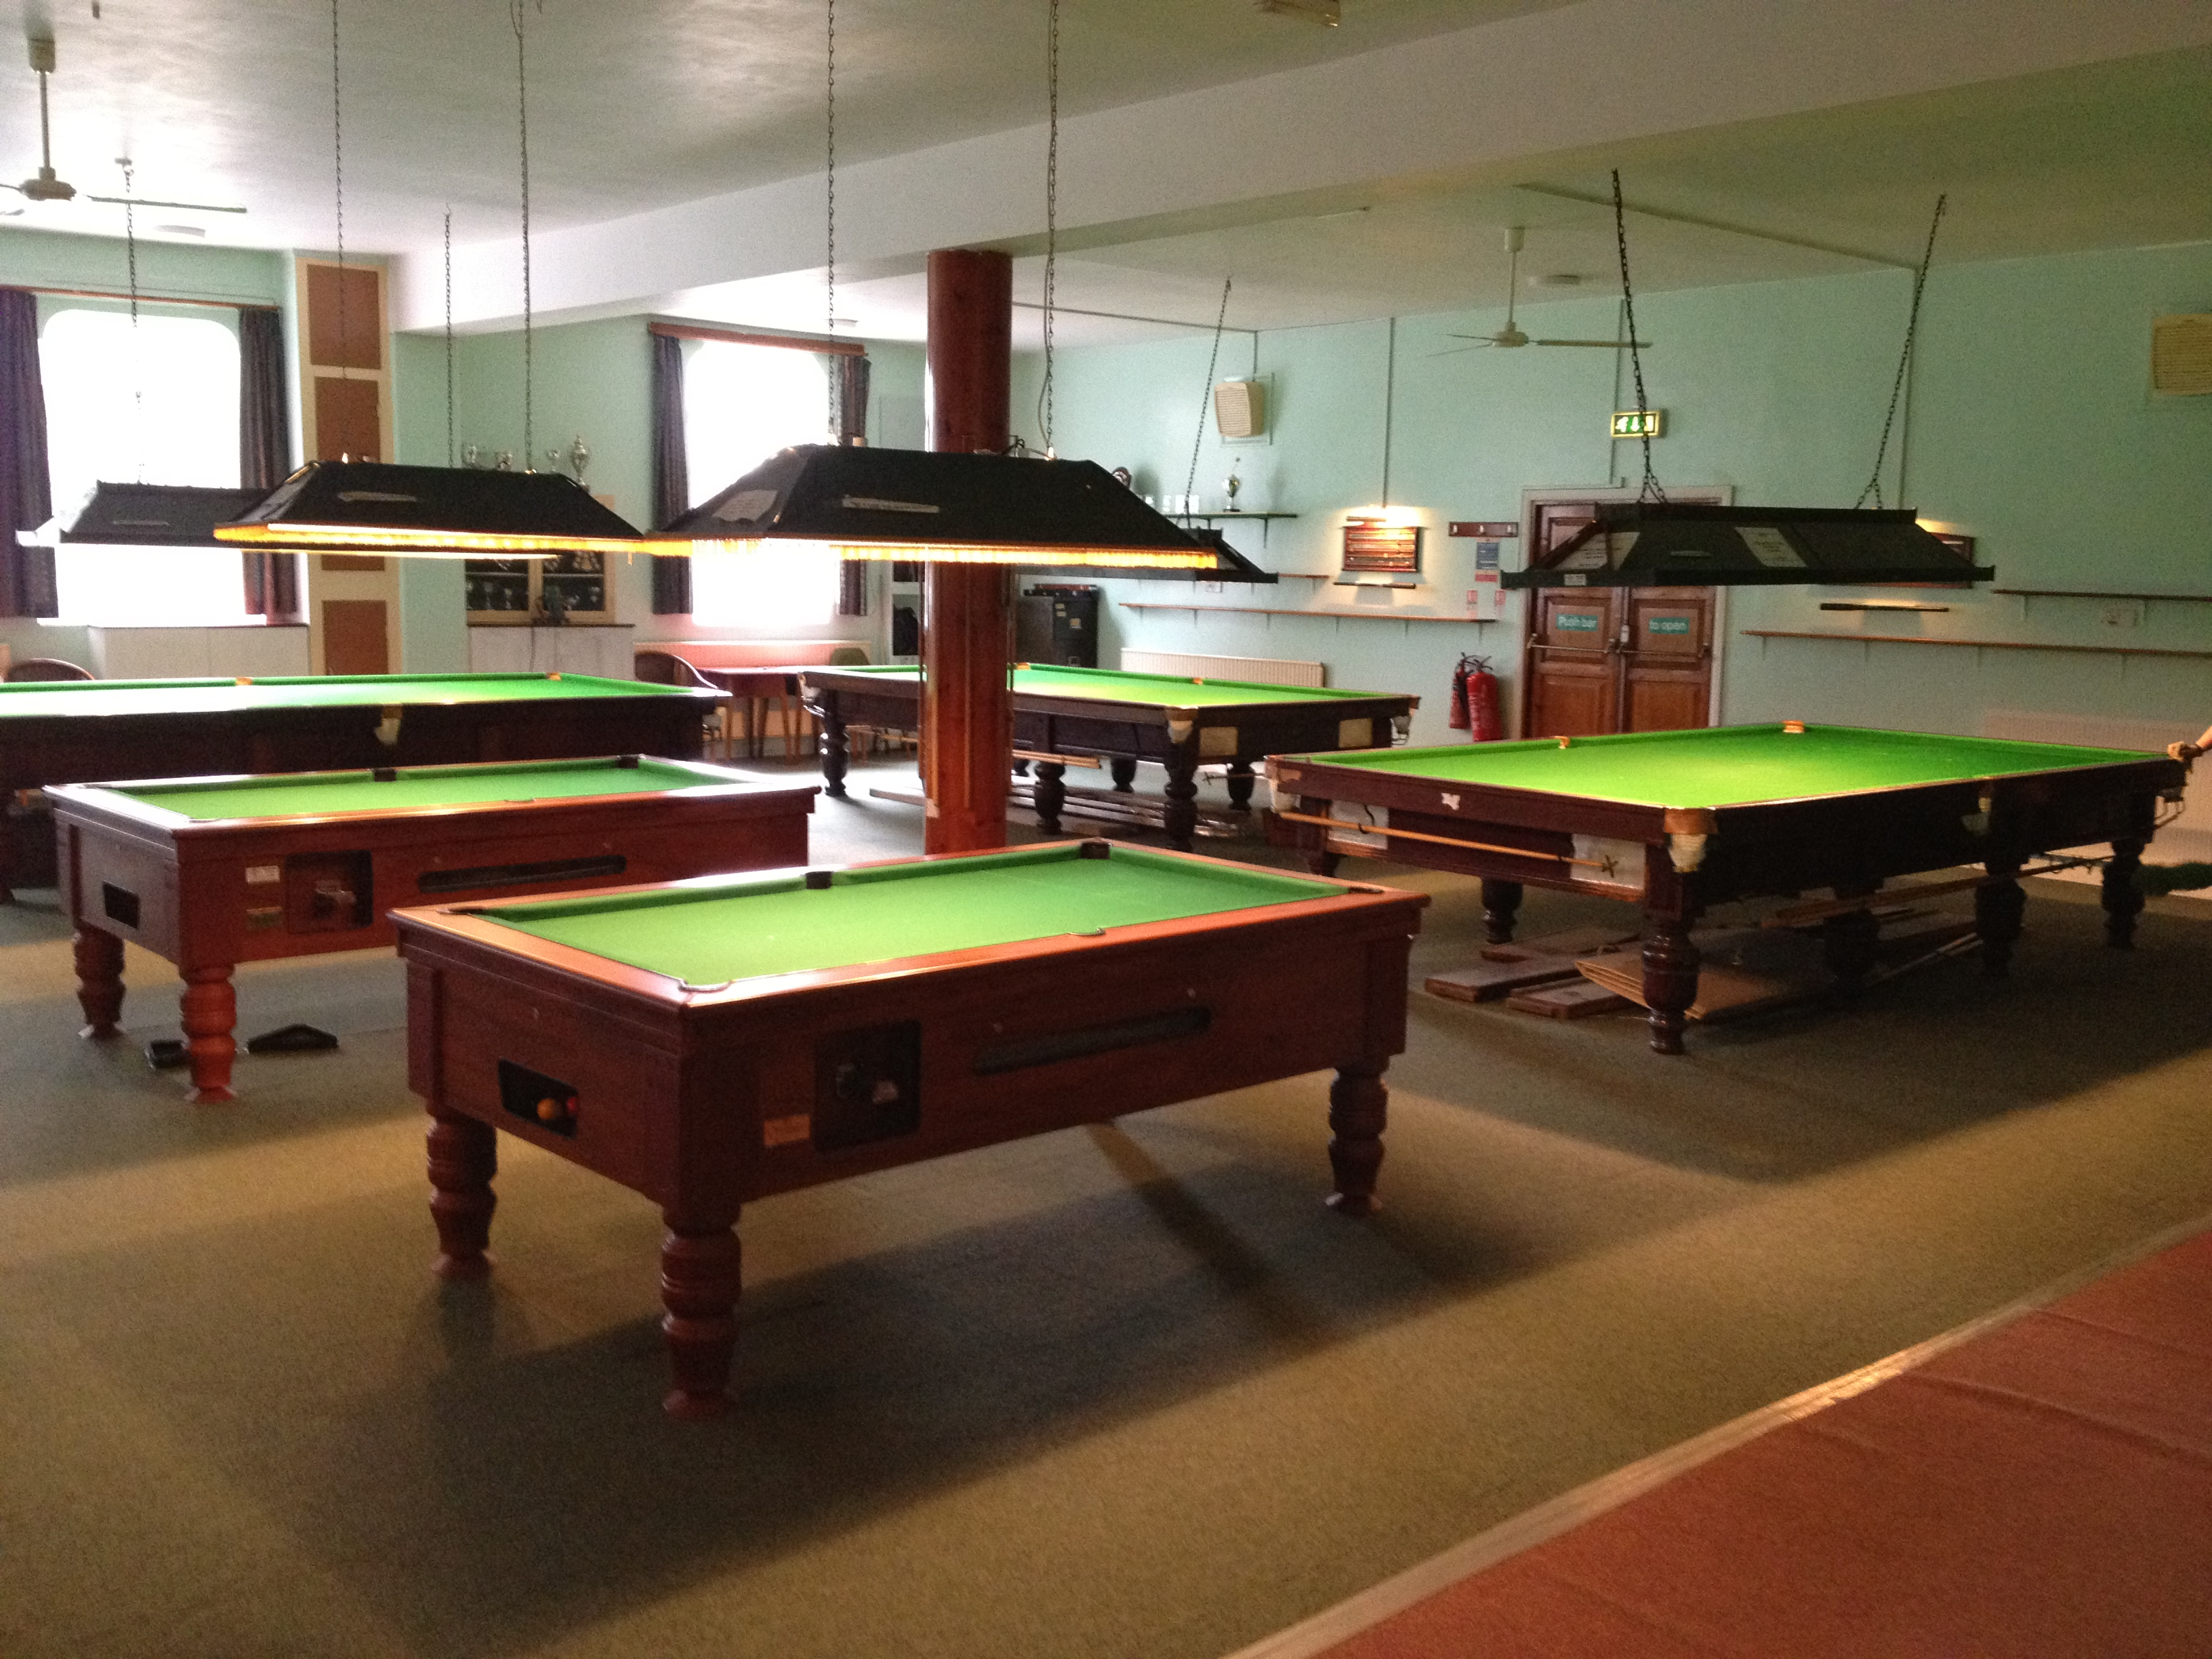 Hainsworths Pool Table Recovering Online Offer Drinkwaters - Billiards table online